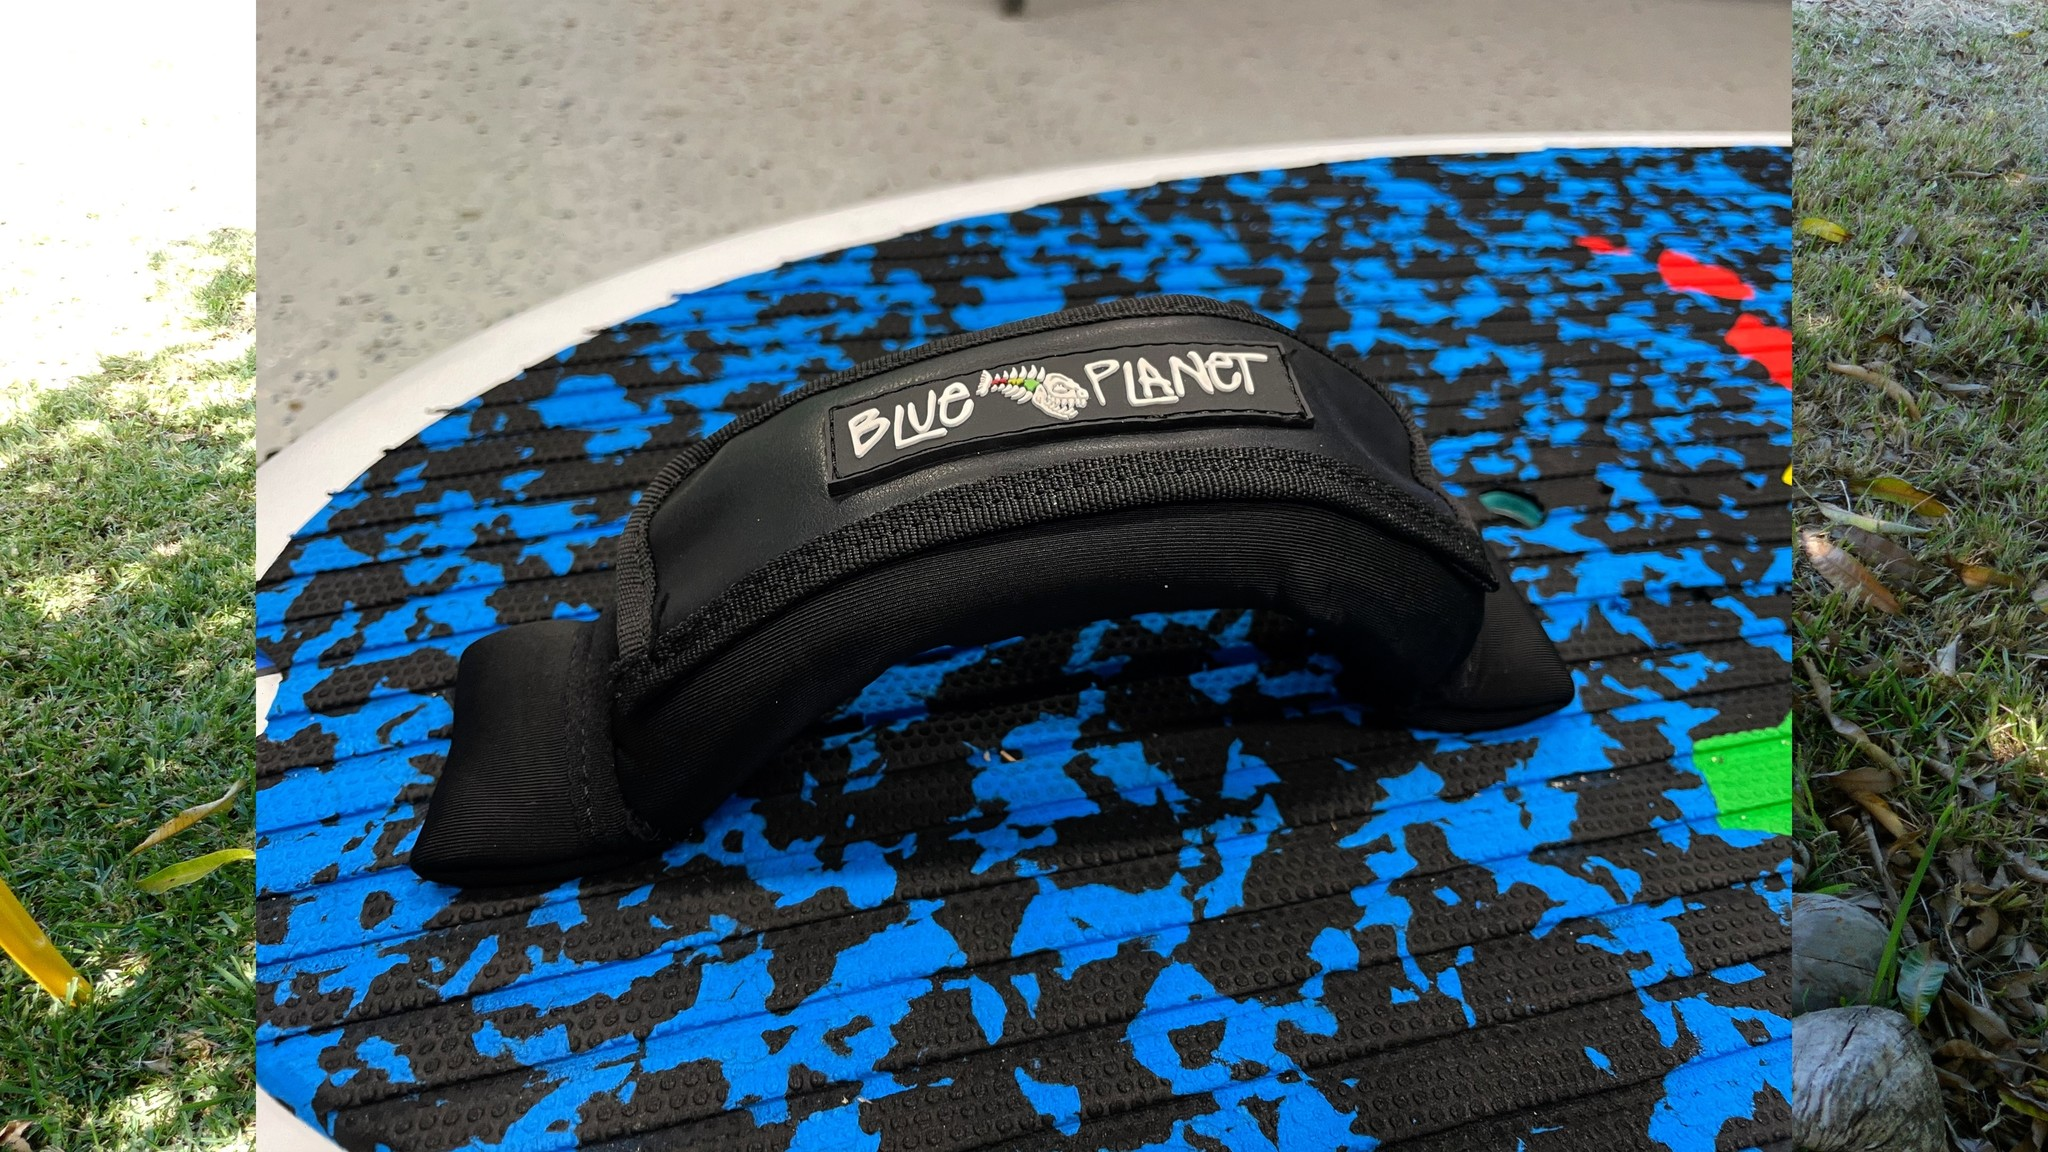 Blue Planet Deluxe footstraps